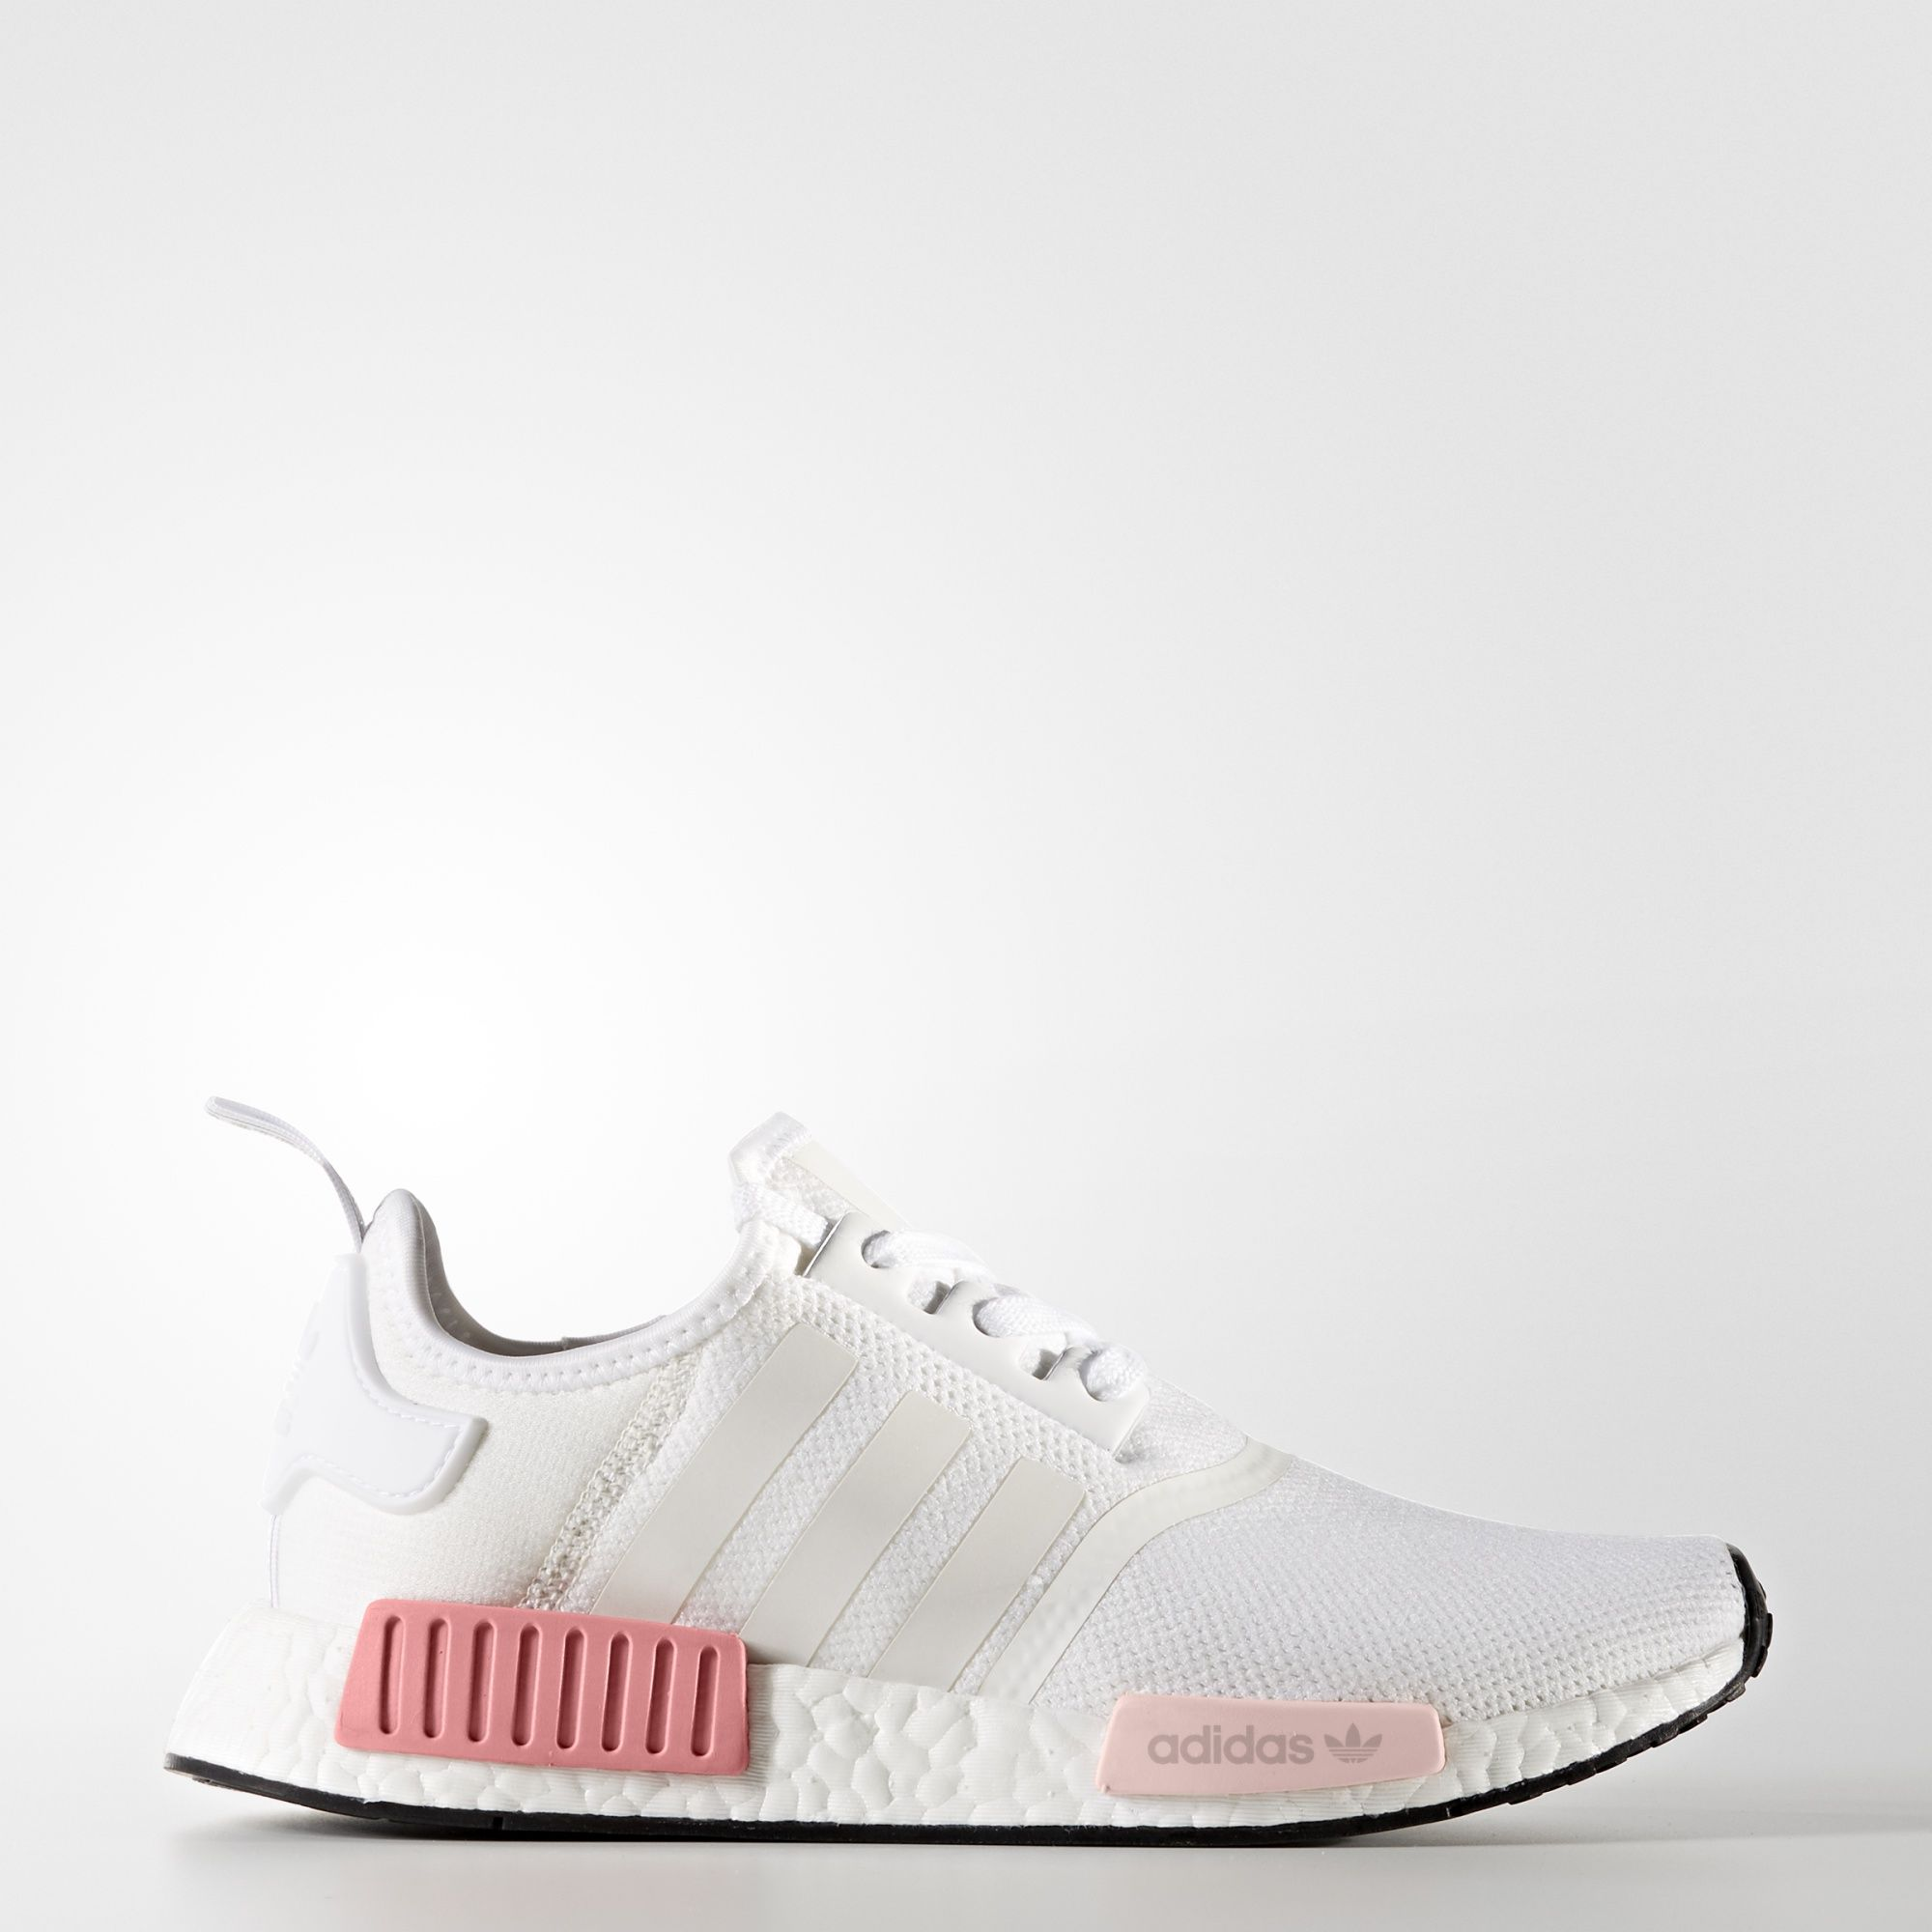 adidas nmd femme blanche et rose